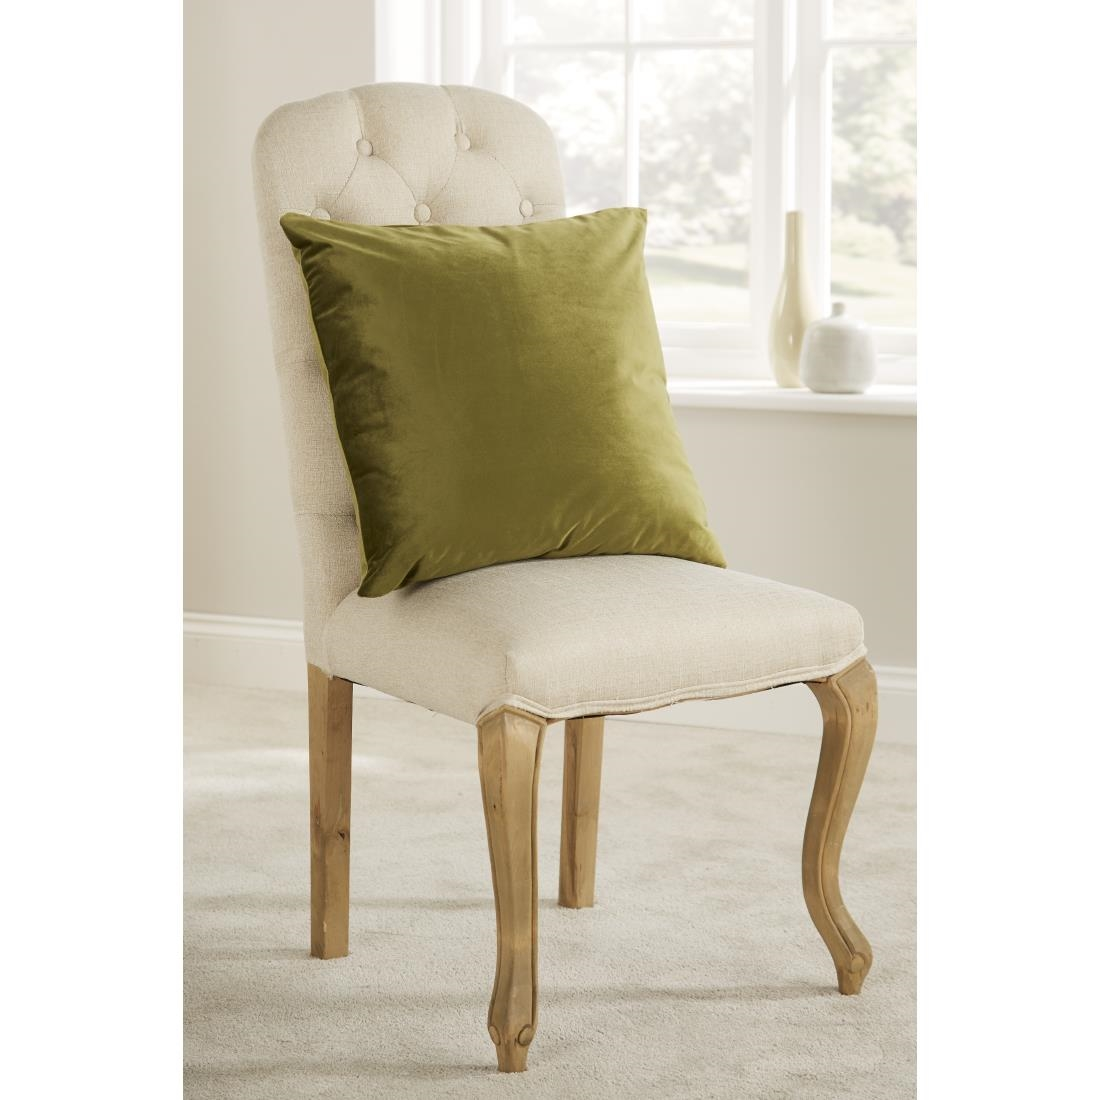 Image of Mitre Comfort DArcy Unpiped Cushion Olive